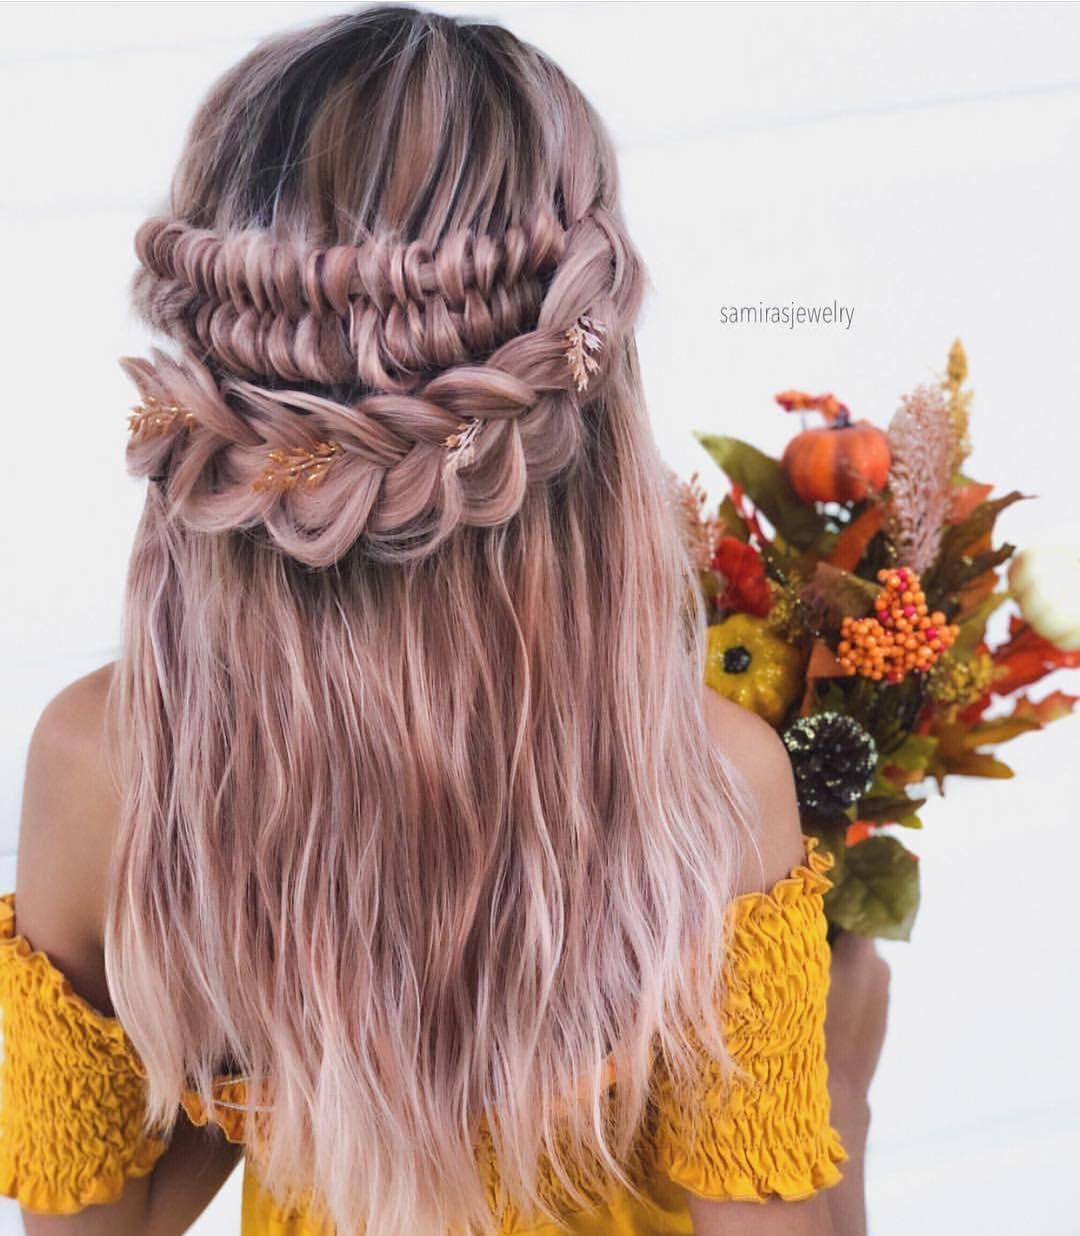 "Such beautiful work by Shayla Robertson Shayla Robertson &#127810; always inspiring! &#127809; Uniwigs ✨ <a class=""pintag"" href=""/explore/beyondtheponytail/"" title=""#beyondtheponytail explore Pinterest"">#beyondtheponytail</a> . . . . . . <a class=""pintag"" href=""/explore/haircrush/"" title=""#haircrush explore Pinterest"">#haircrush</a> <a class=""pintag"" href=""/explore/hairenvy/"" title=""#hairenvy explore Pinterest"">#hairenvy</a>… <a class=""pintag"" href=""/explore/uniquebraidedhairstyles/"" title=""#uniquebraidedhairstyles explore Pinterest"">#uniquebraidedhairstyles</a><p><a href=""http://www.homeinteriordesign.org/2018/02/short-guide-to-interior-decoration.html"">Short guide to interior decoration</a></p>"